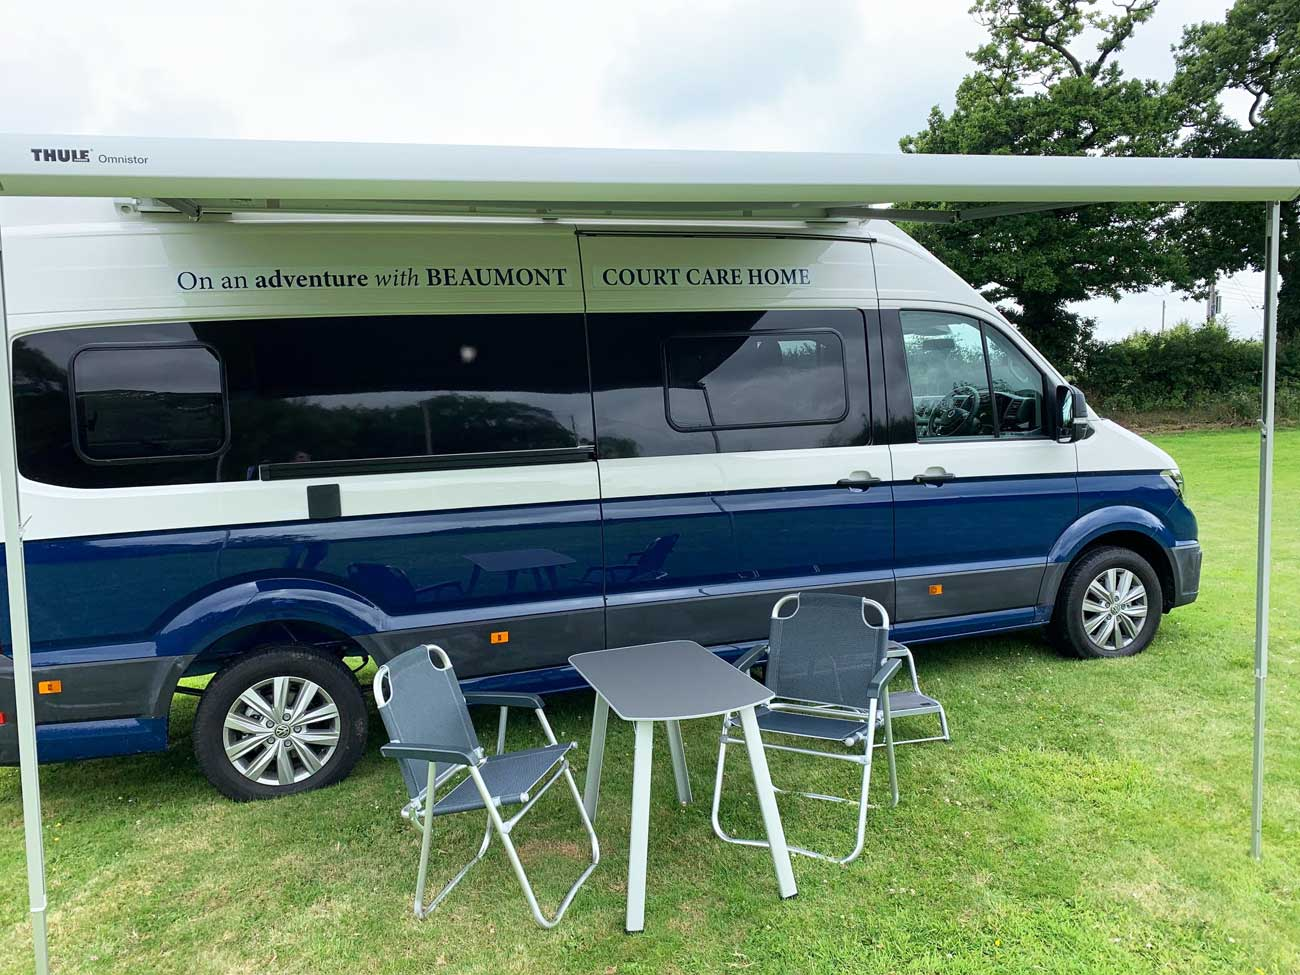 Open Campervan for Dementia Care (Side View)